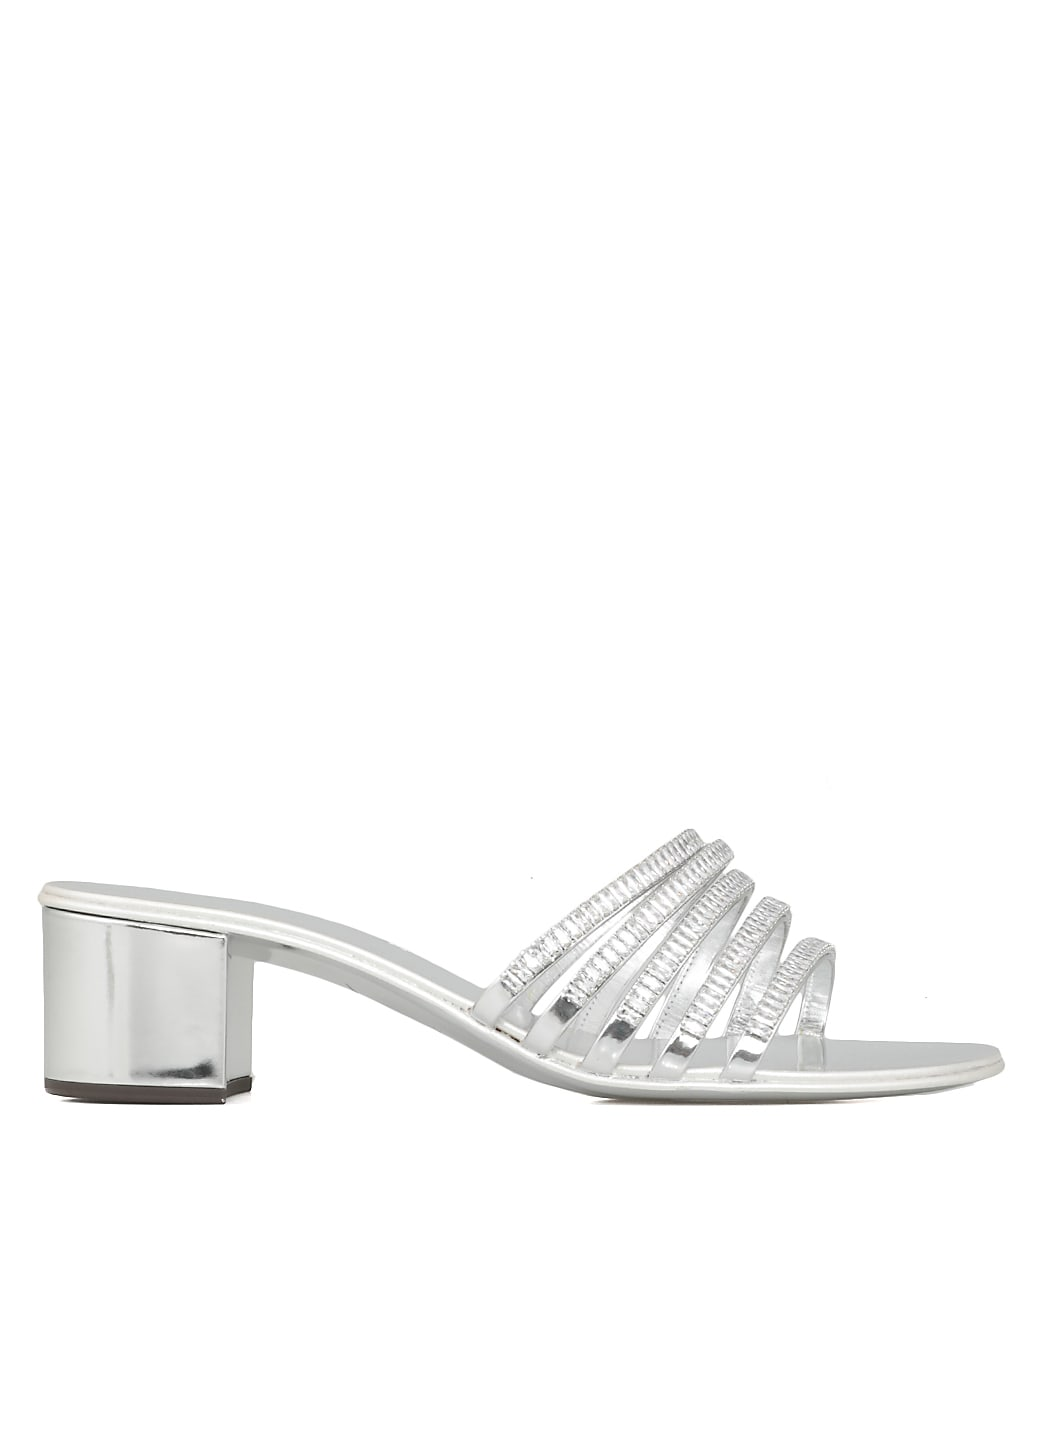 Giuseppe Zanotti Sandals With Crystals